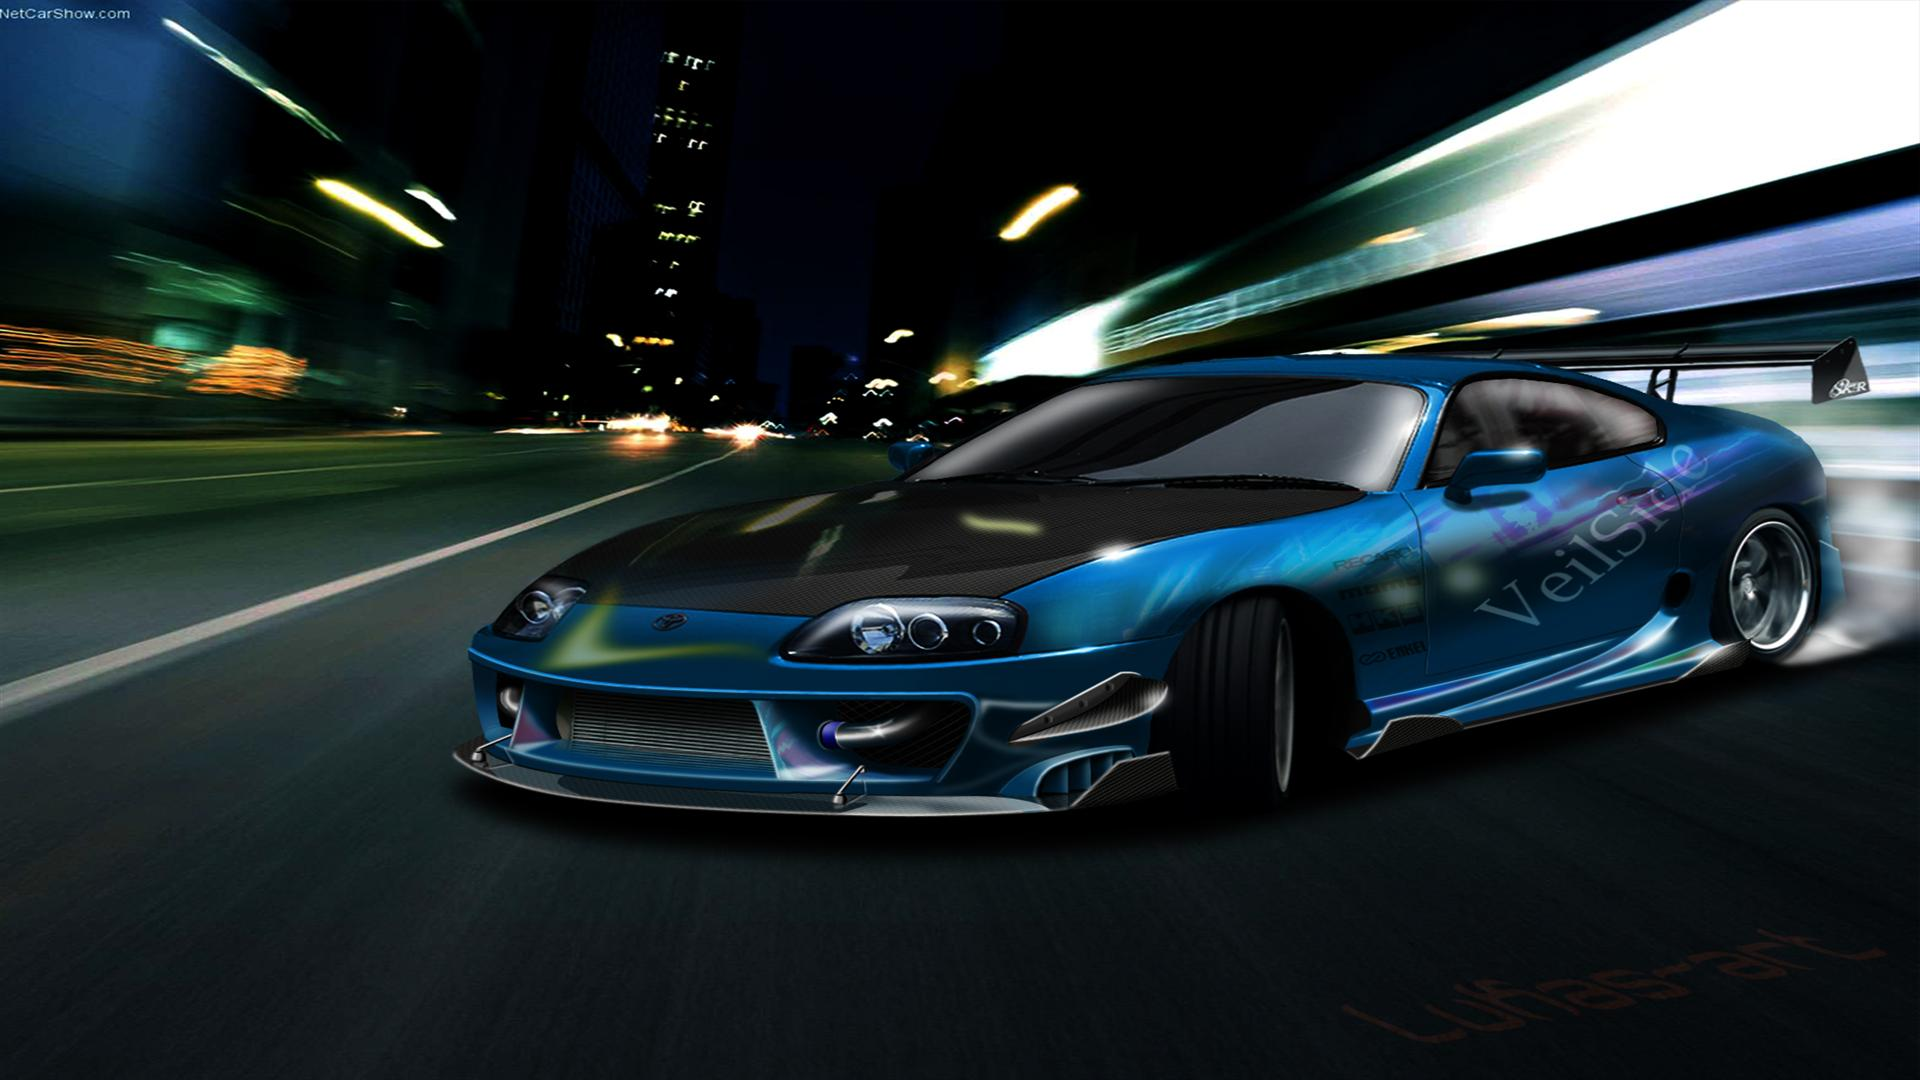 Showing The 6 Photos of cool car wallpapers hd 1080p 1920x1080